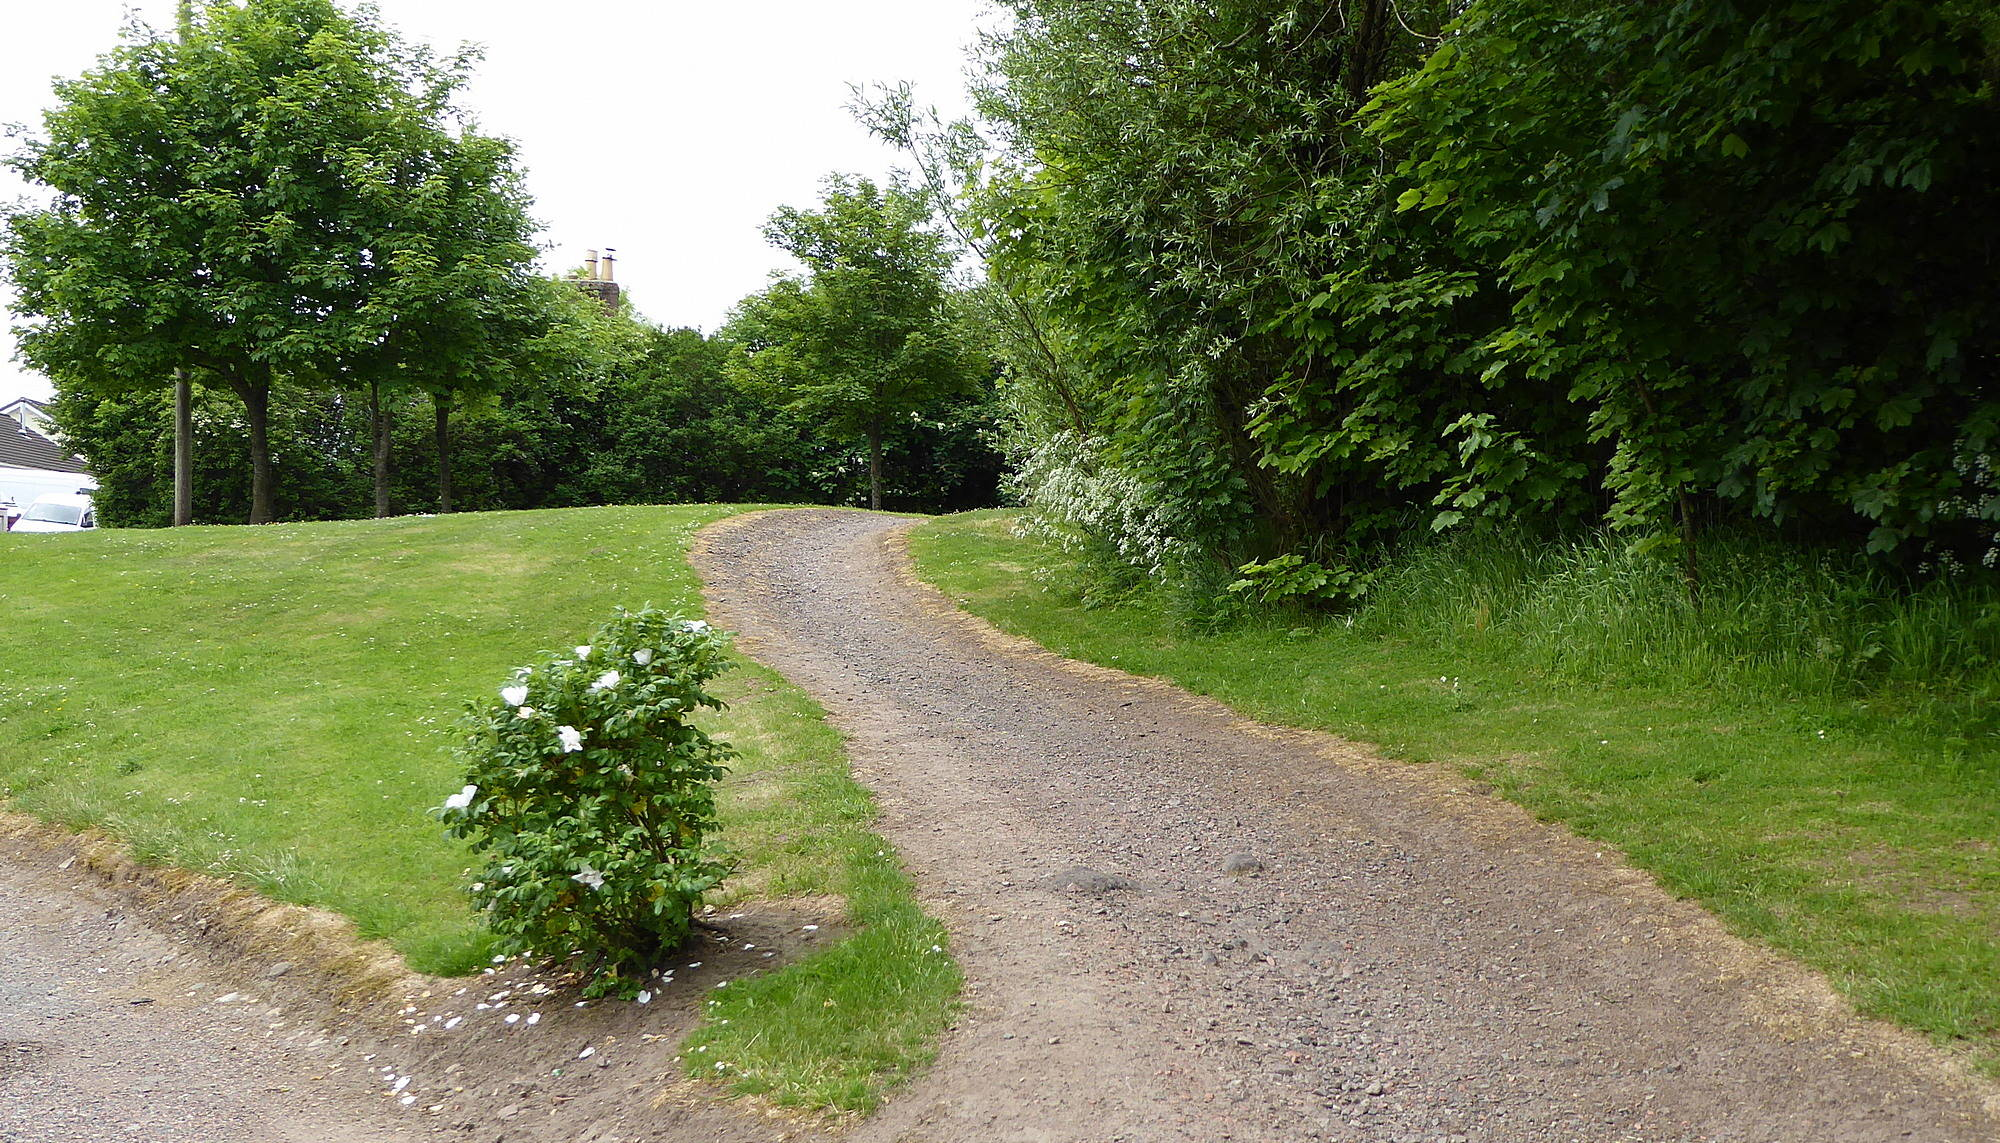 Path from Railway Road to Braehead Road (This was formerly a bogie line carrying coal). 8th June 2018